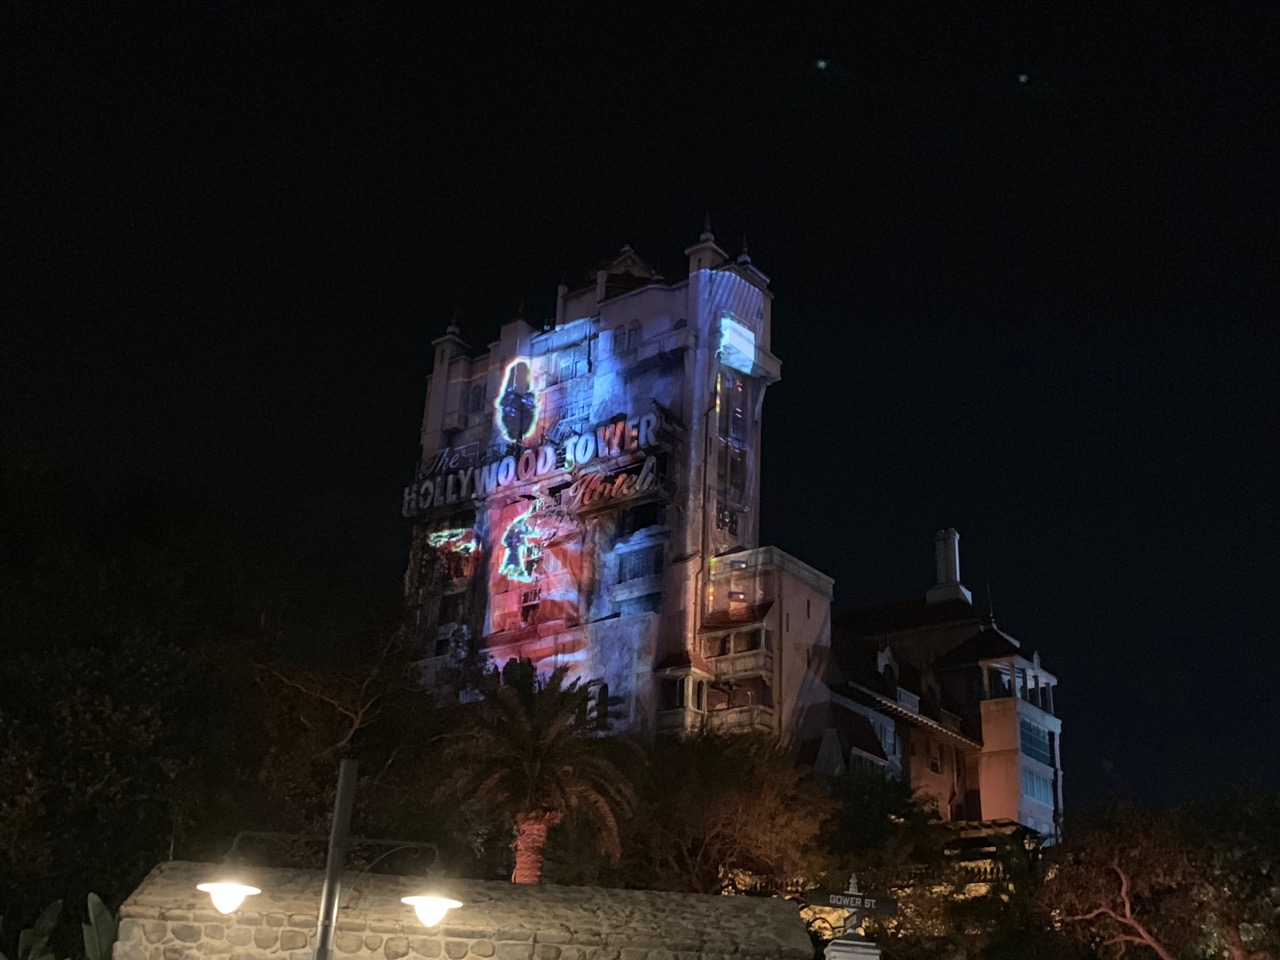 disney world hollywood studios after hours review 52 tower of terror.jpeg